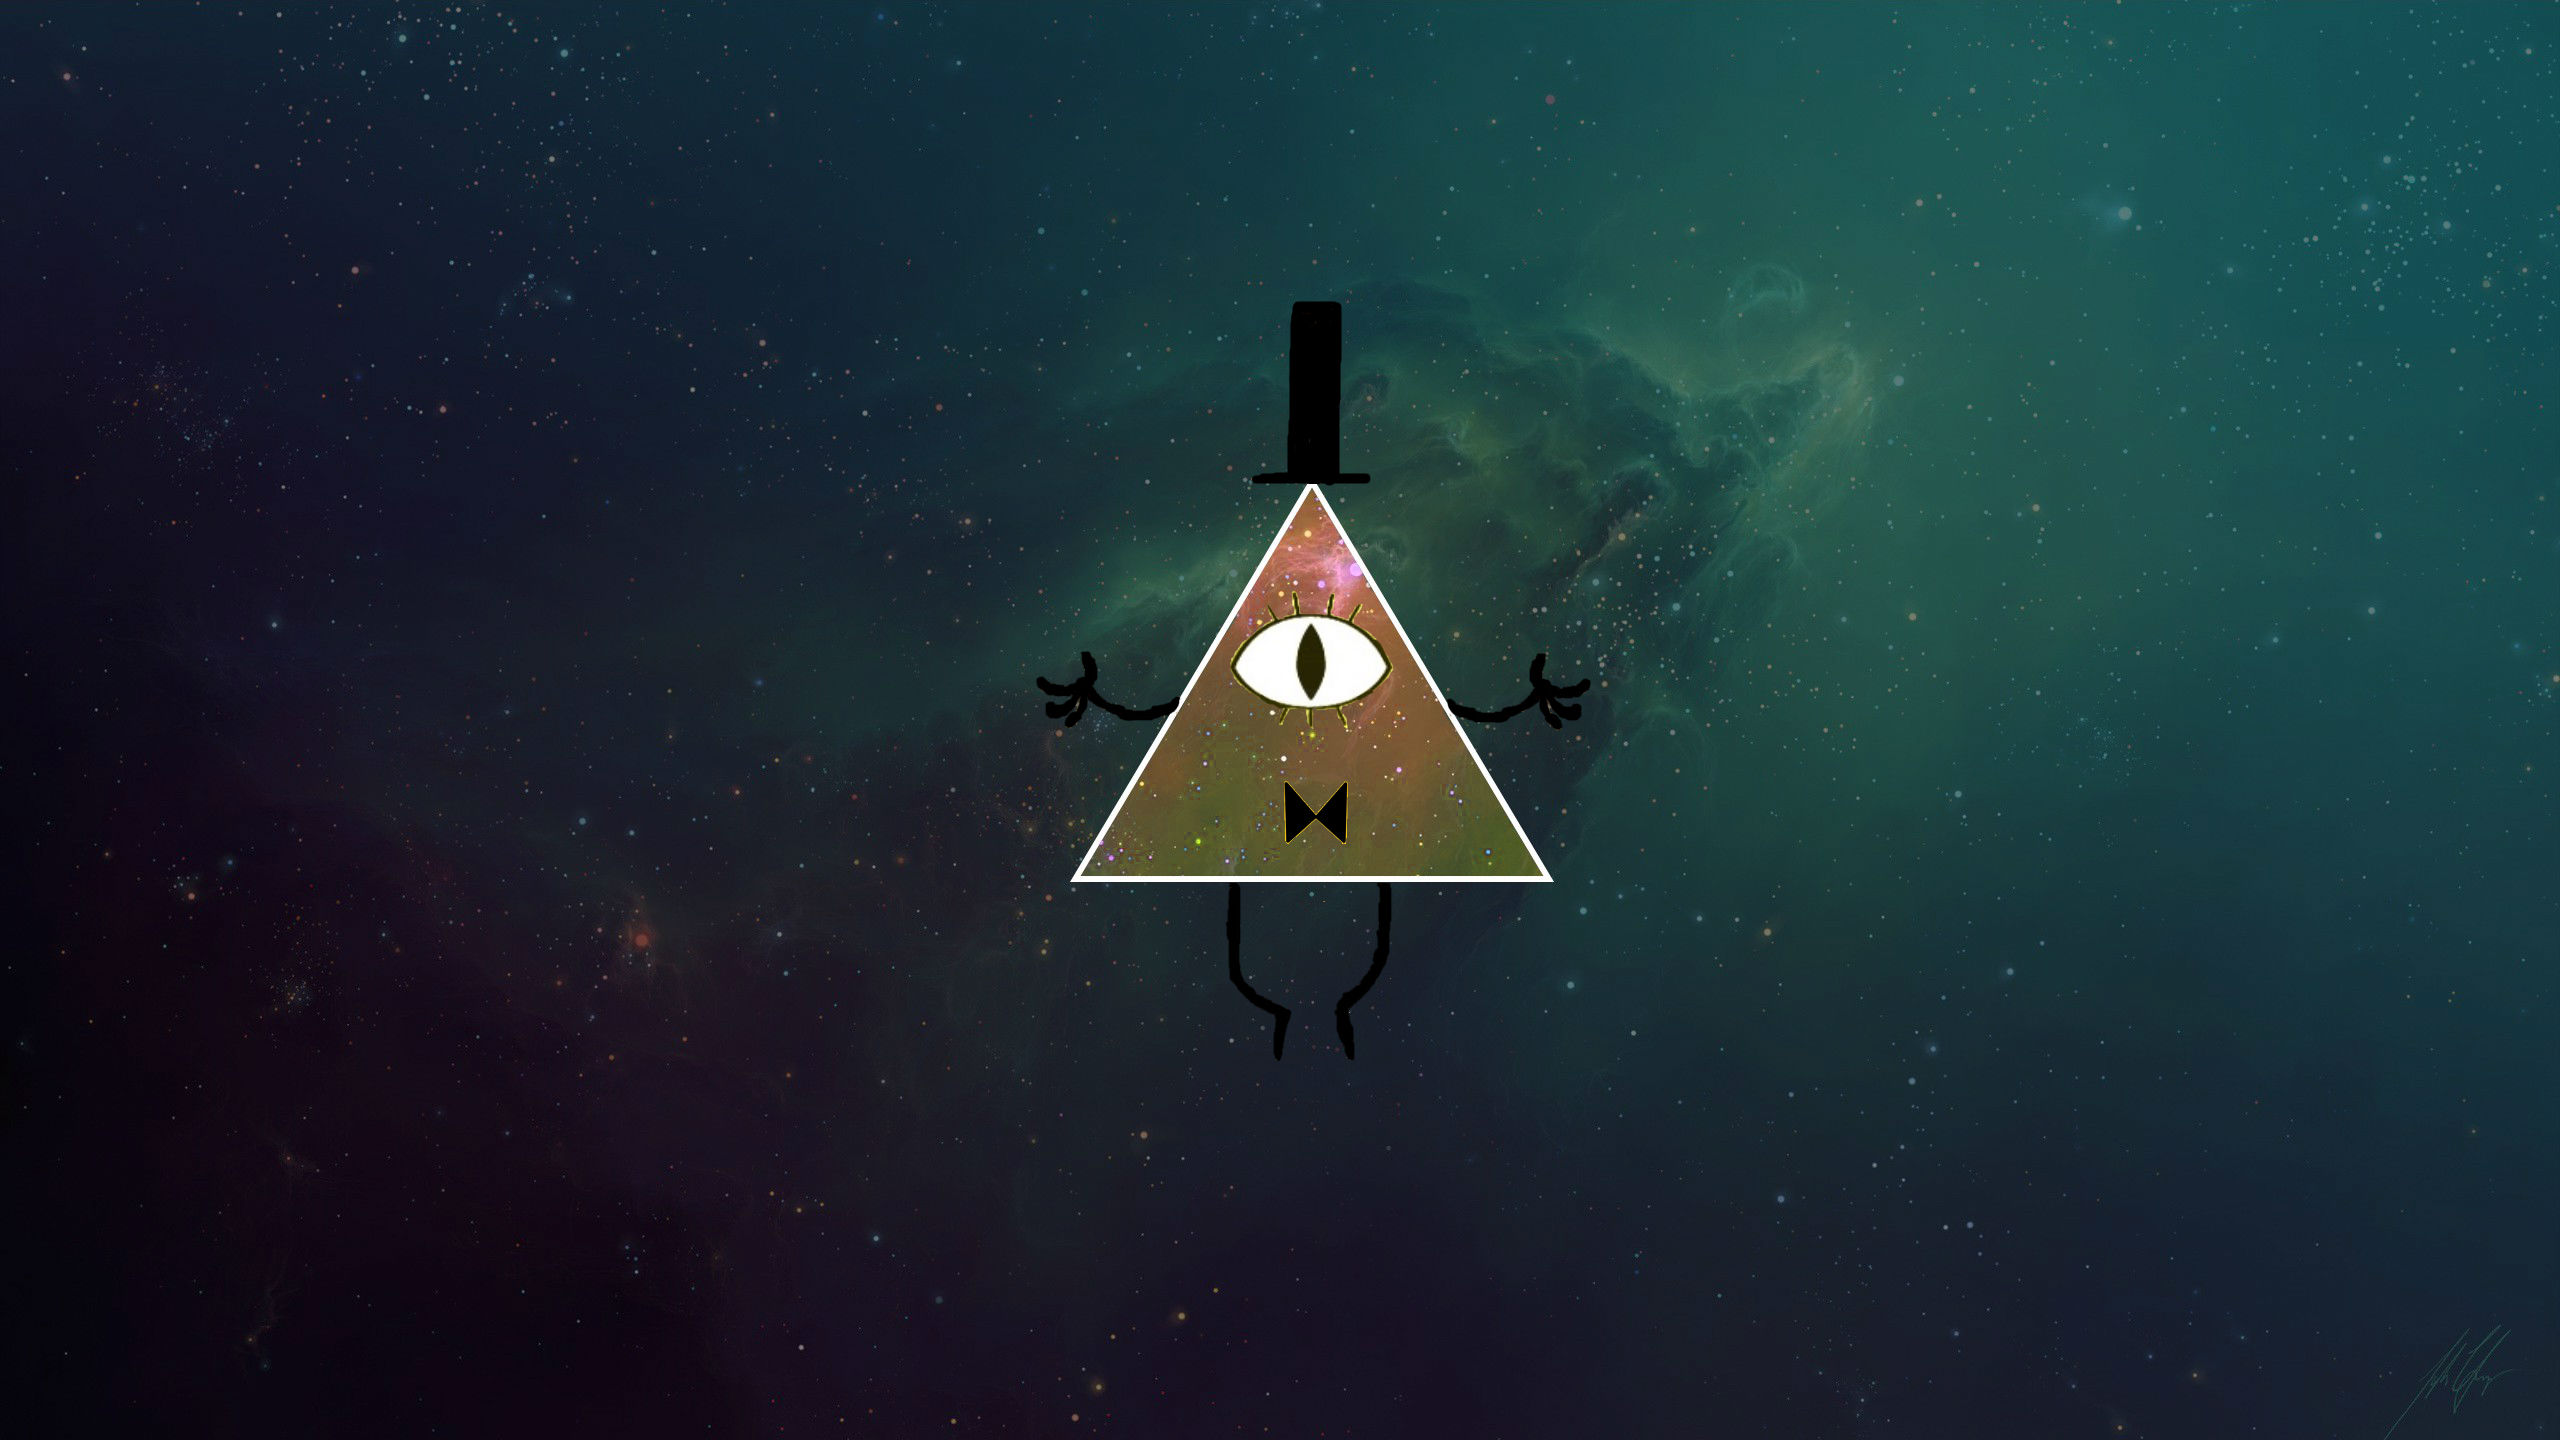 Gravity Falls Wallpaper   Triangle Galaxy Download Wallpapers on 2560x1440